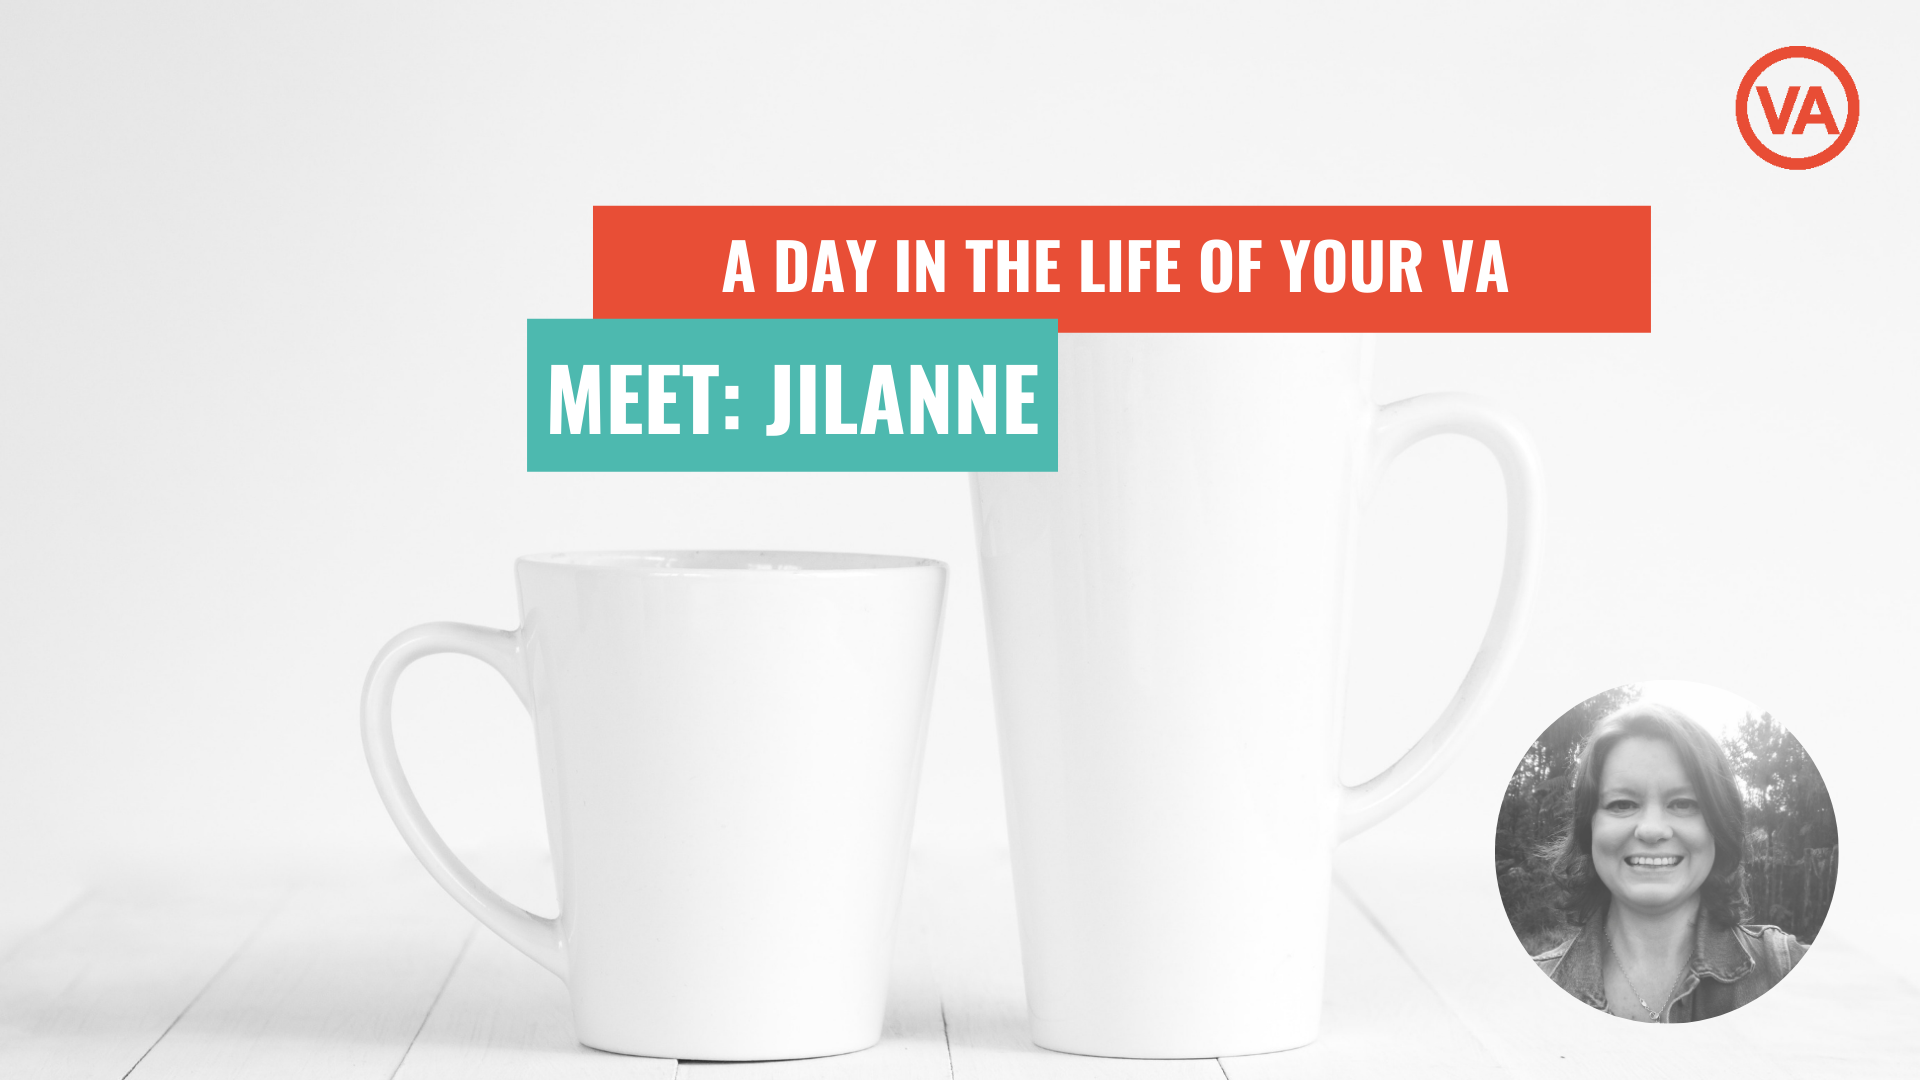 A Day in the Life of a VA: Meet Jilanne